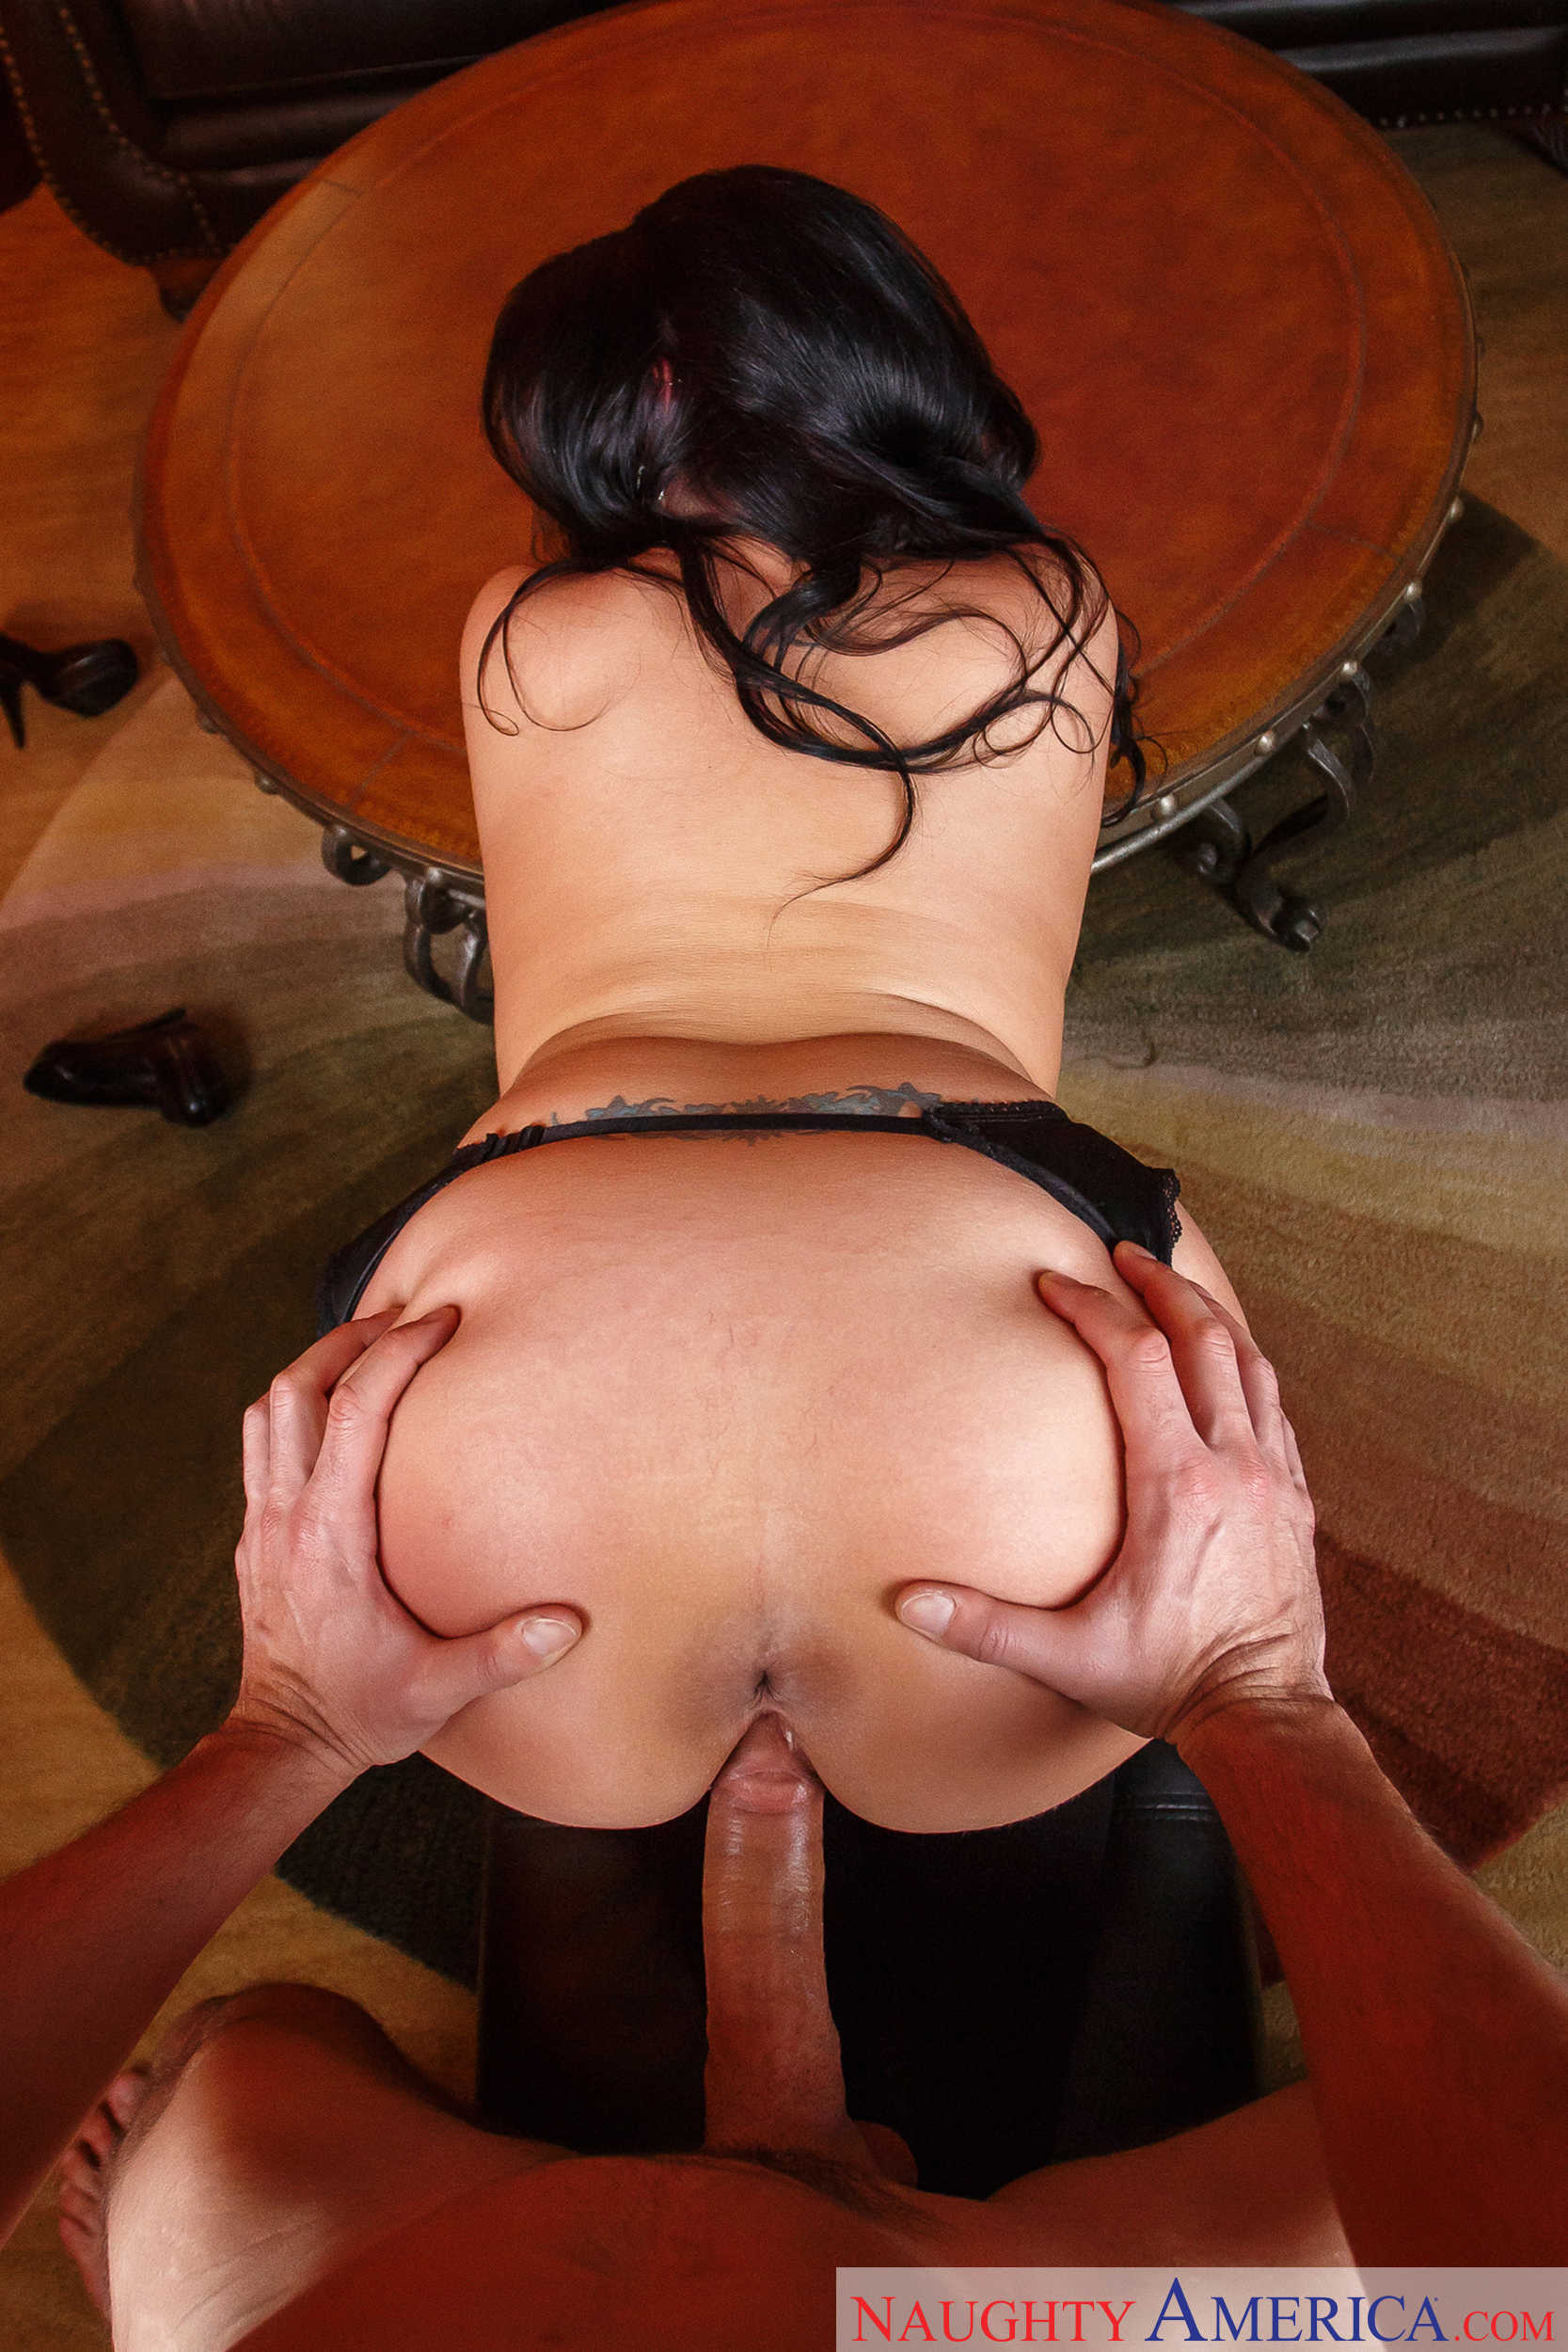 Ample Sheridan Love Gives Ryan Drillers A Tits Job 608108 Full Figured Brunette Mother In Really Sex Black Lingerie